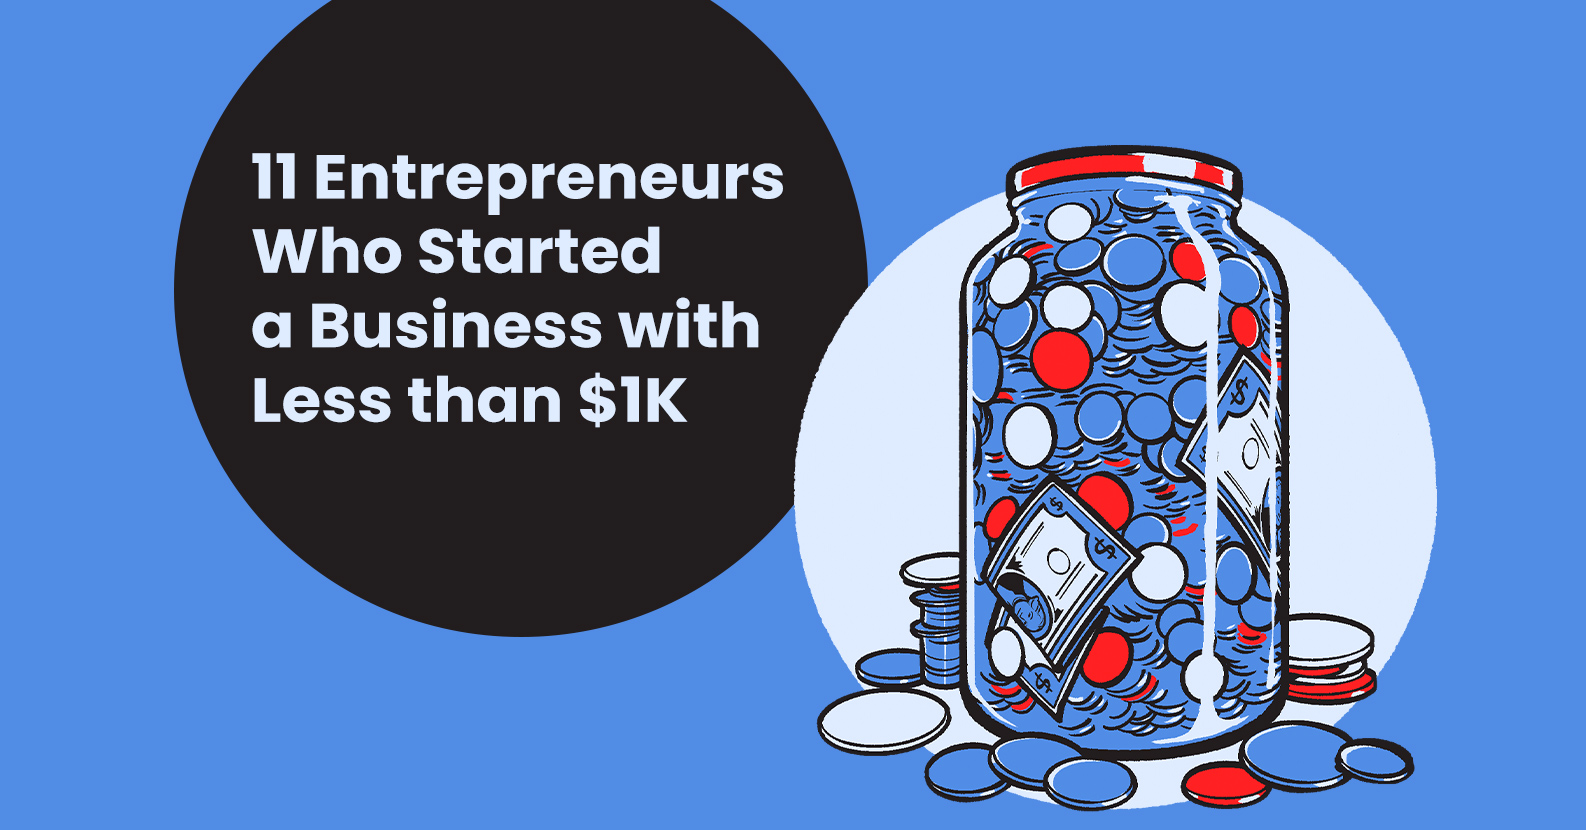 Start a Business with Less than $1k: These 11 Entrepreneurship Success Stories Prove it Can Be Done